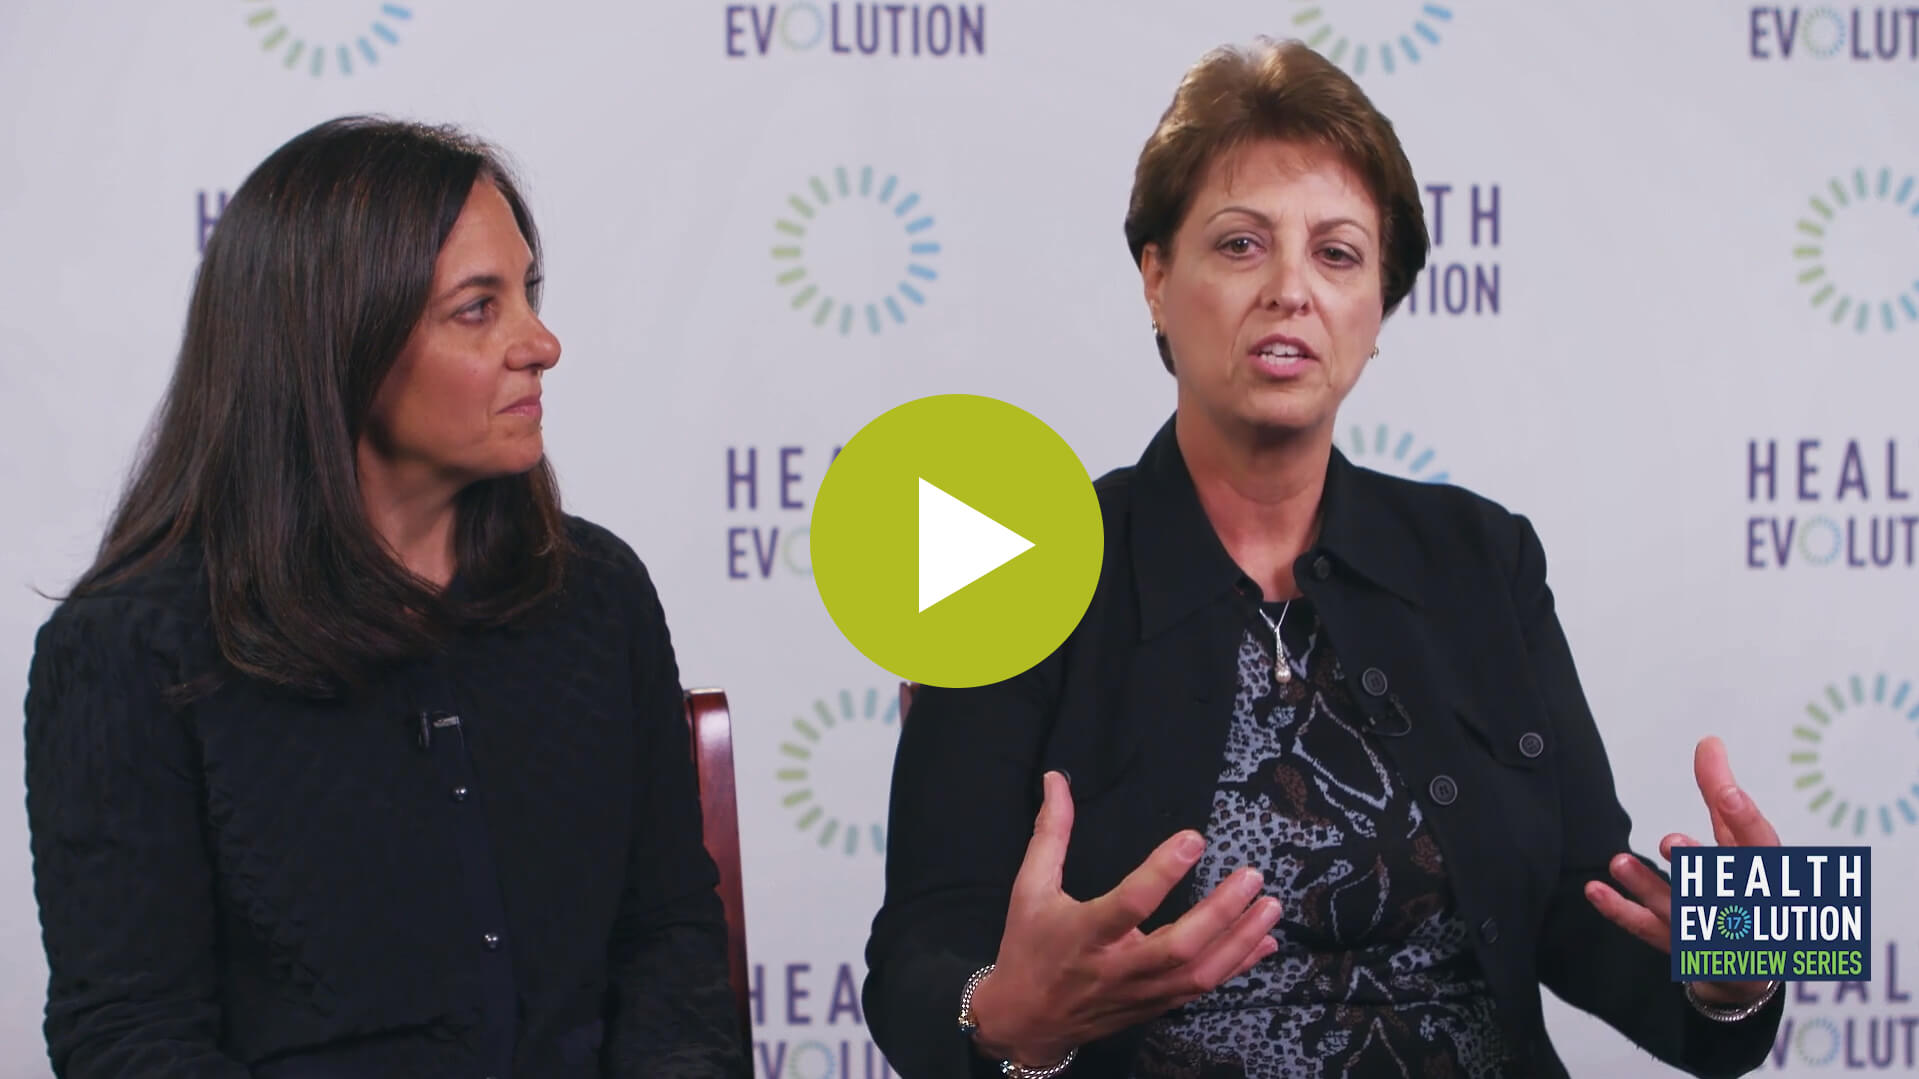 Health Evolution Interview Series - Dawn Owens of Triple Tree and Lale White of XIFIN discuss how creating a collaborative culture can lead to success.